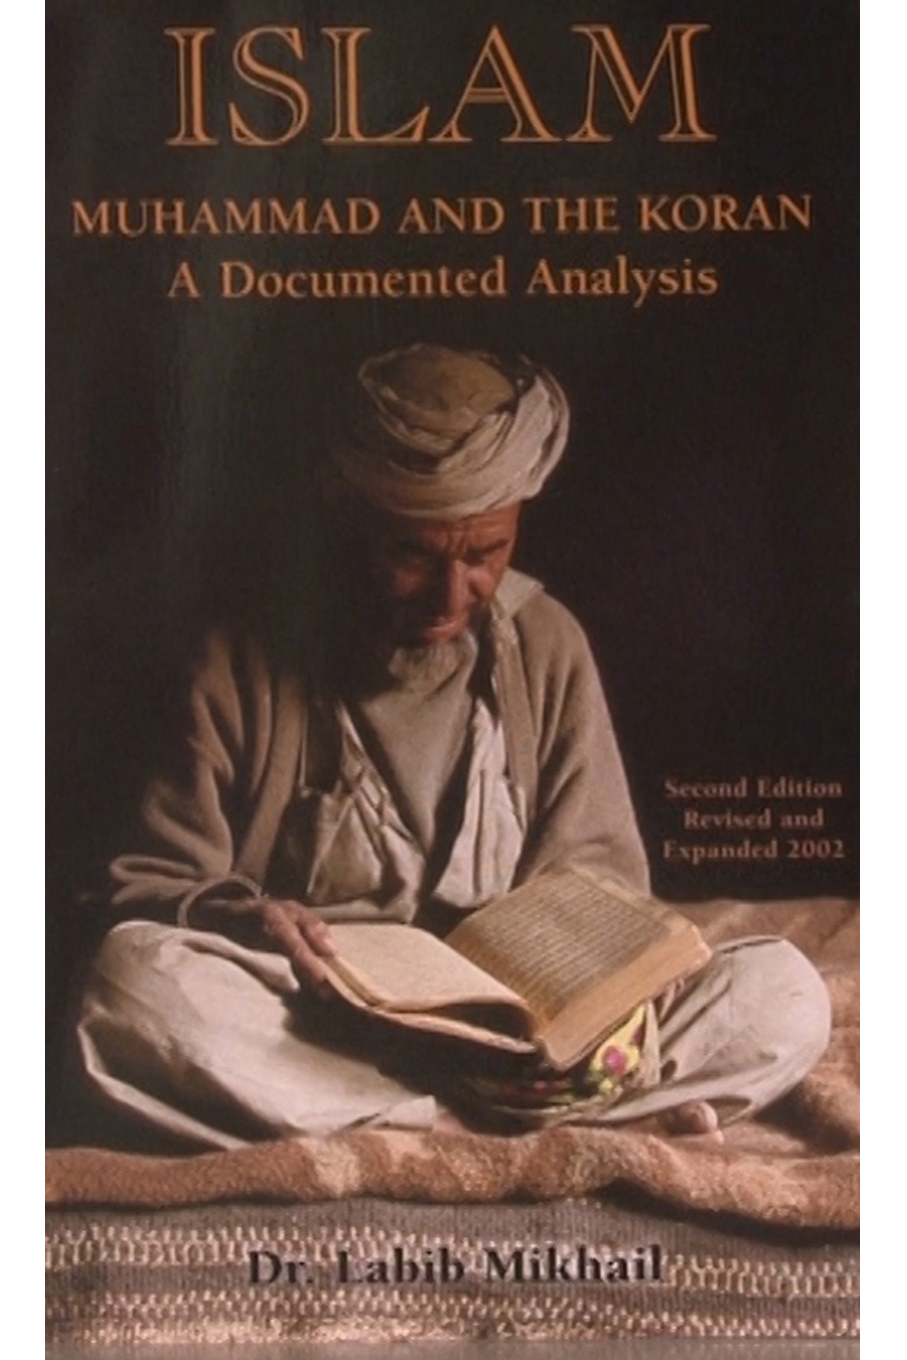 Islam Muhammad and the Koran: A Documented Analysis